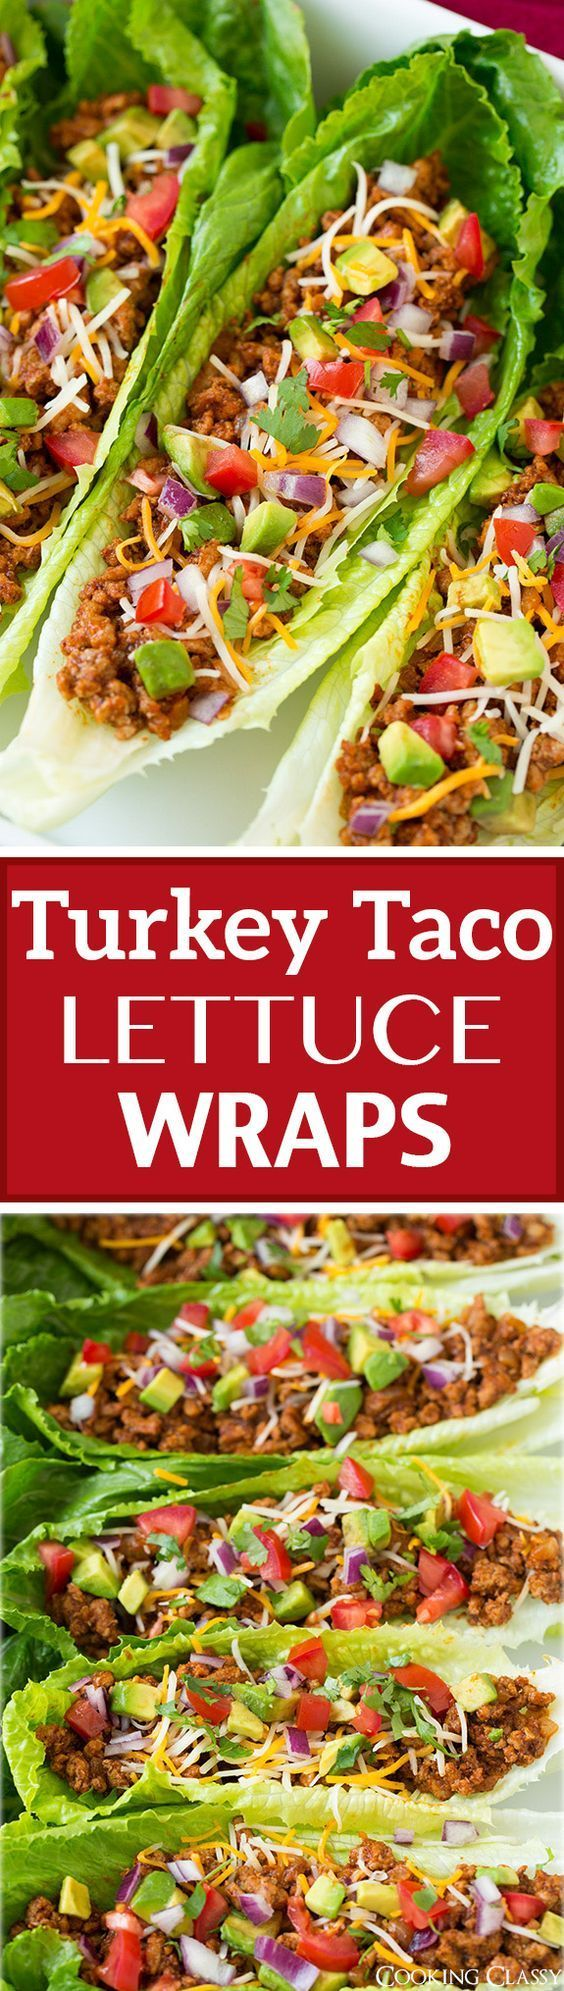 Taco Lettuce Wraps on Pinterest | Turkey lettuce wraps, Ground turkey ...